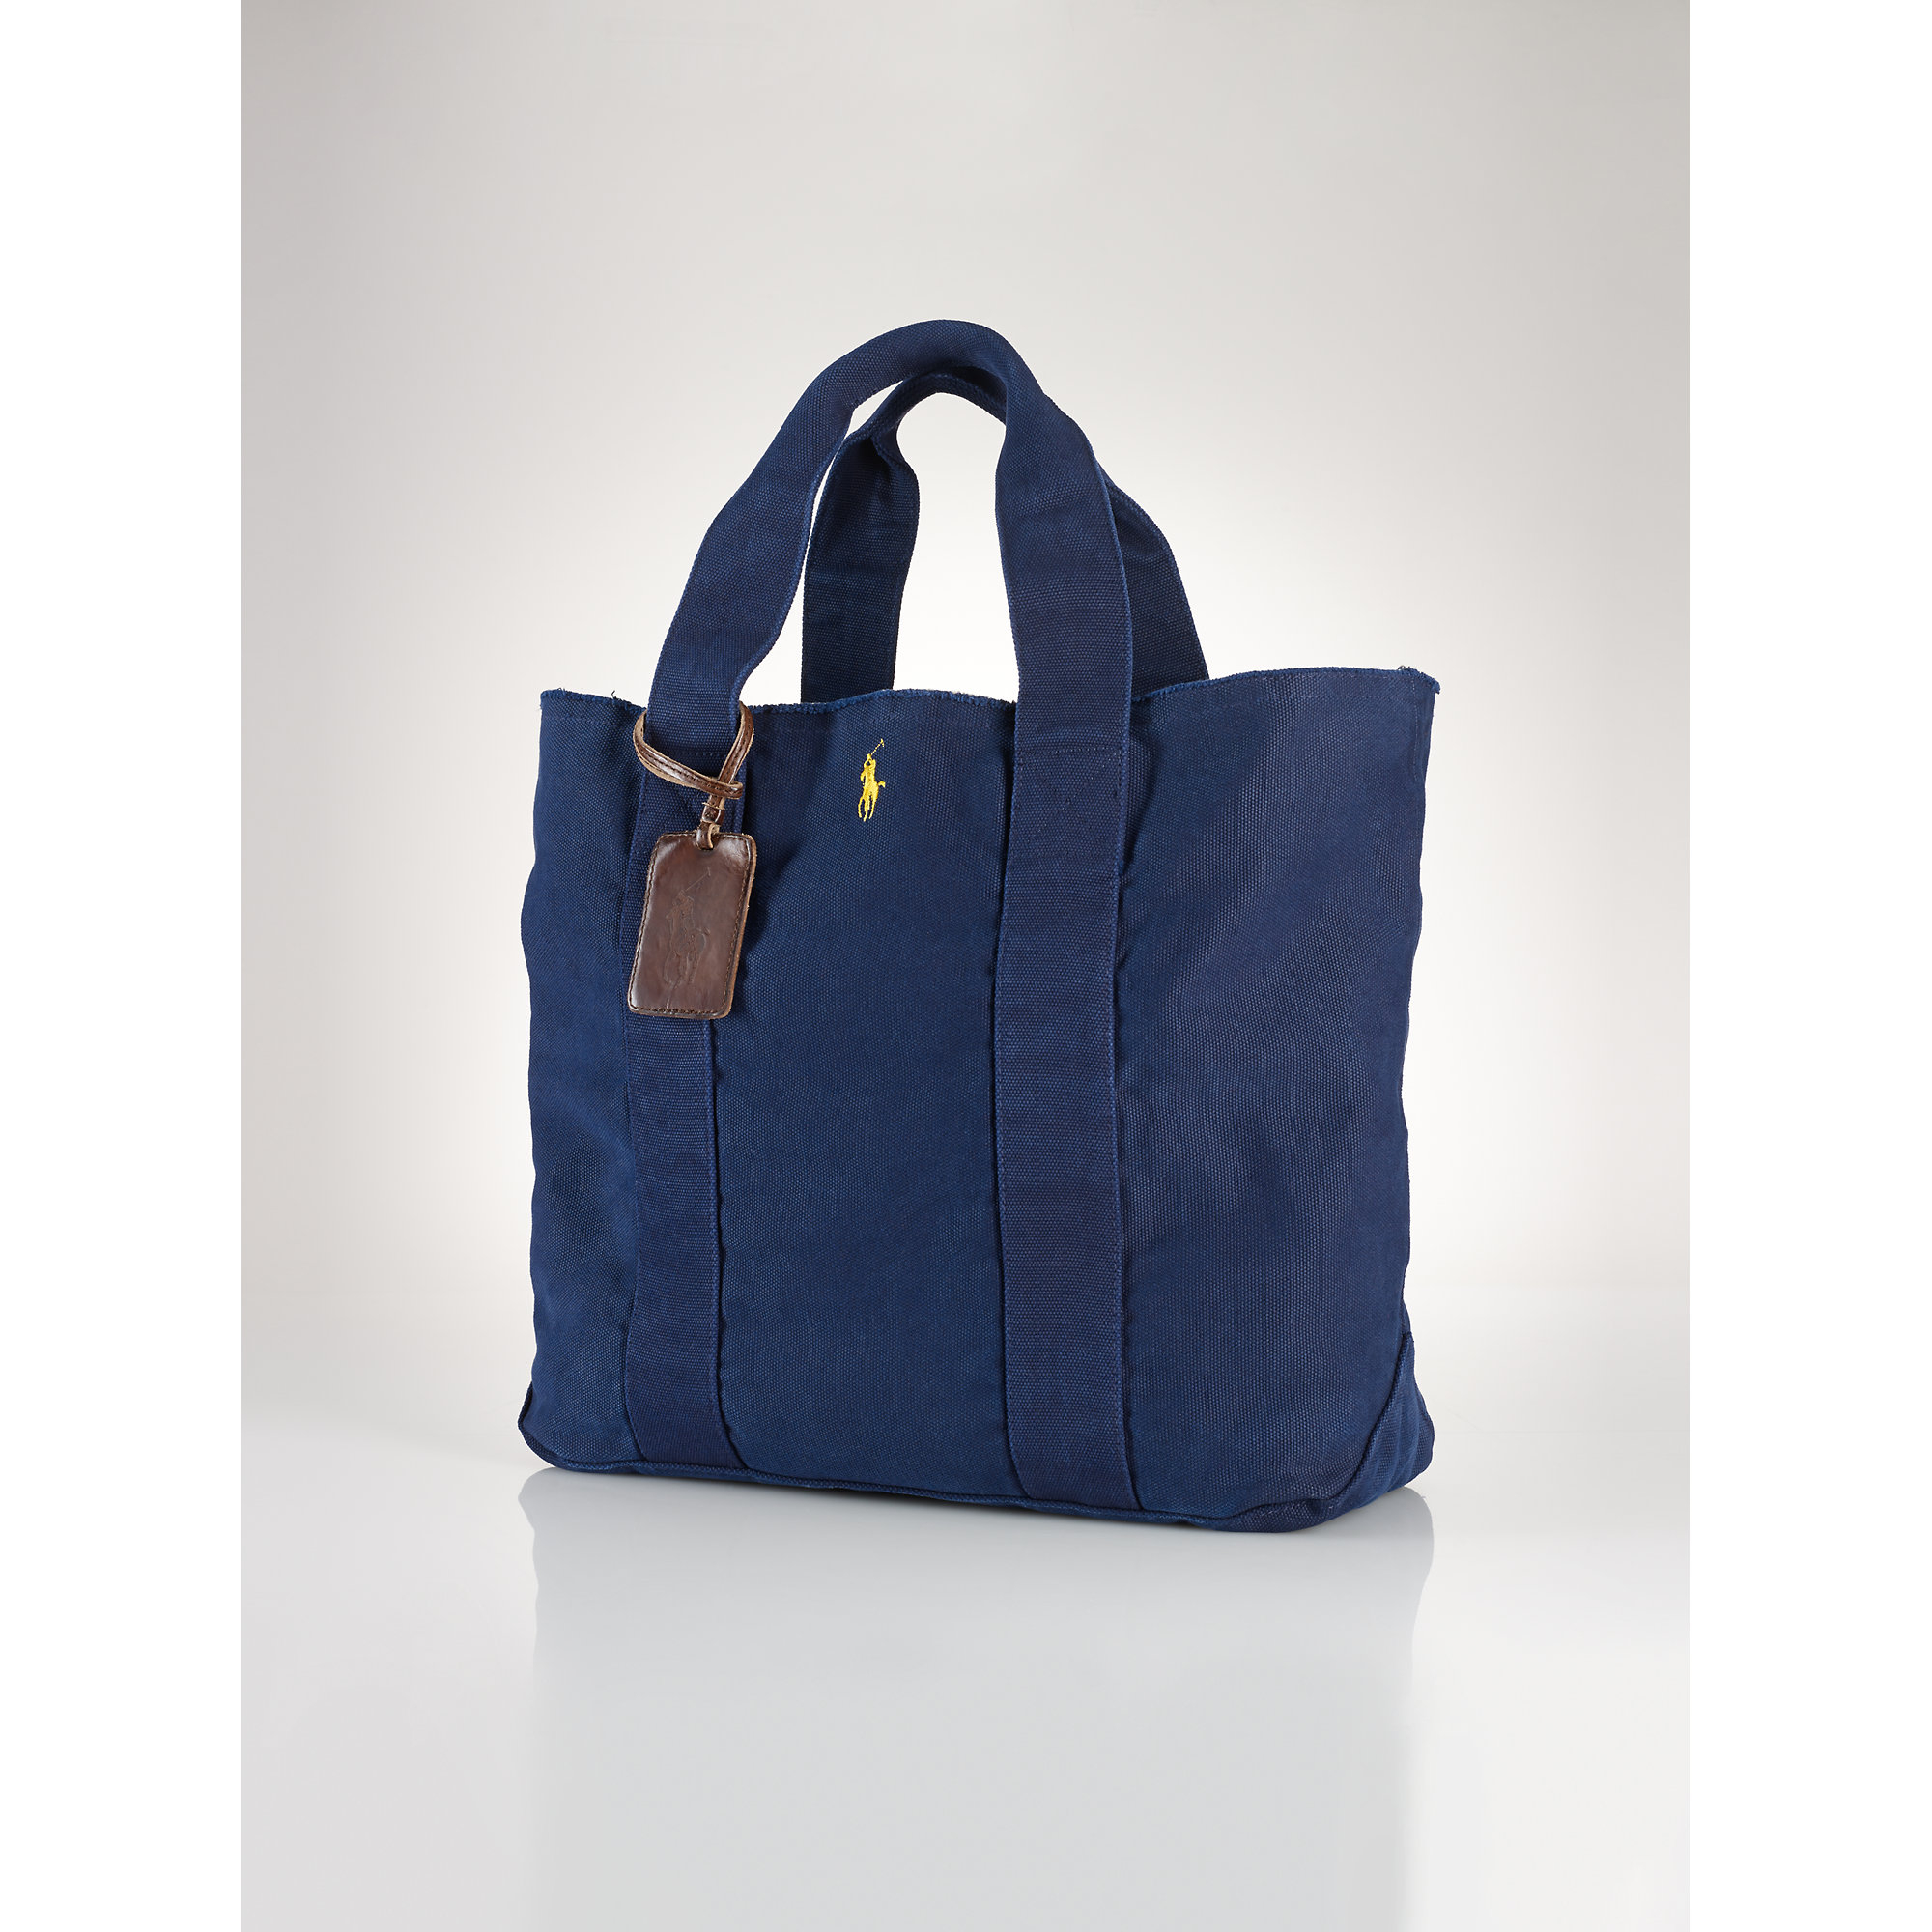 4df93954758 low cost lyst polo ralph lauren pony canvas tote in blue 7c73a 77d5e